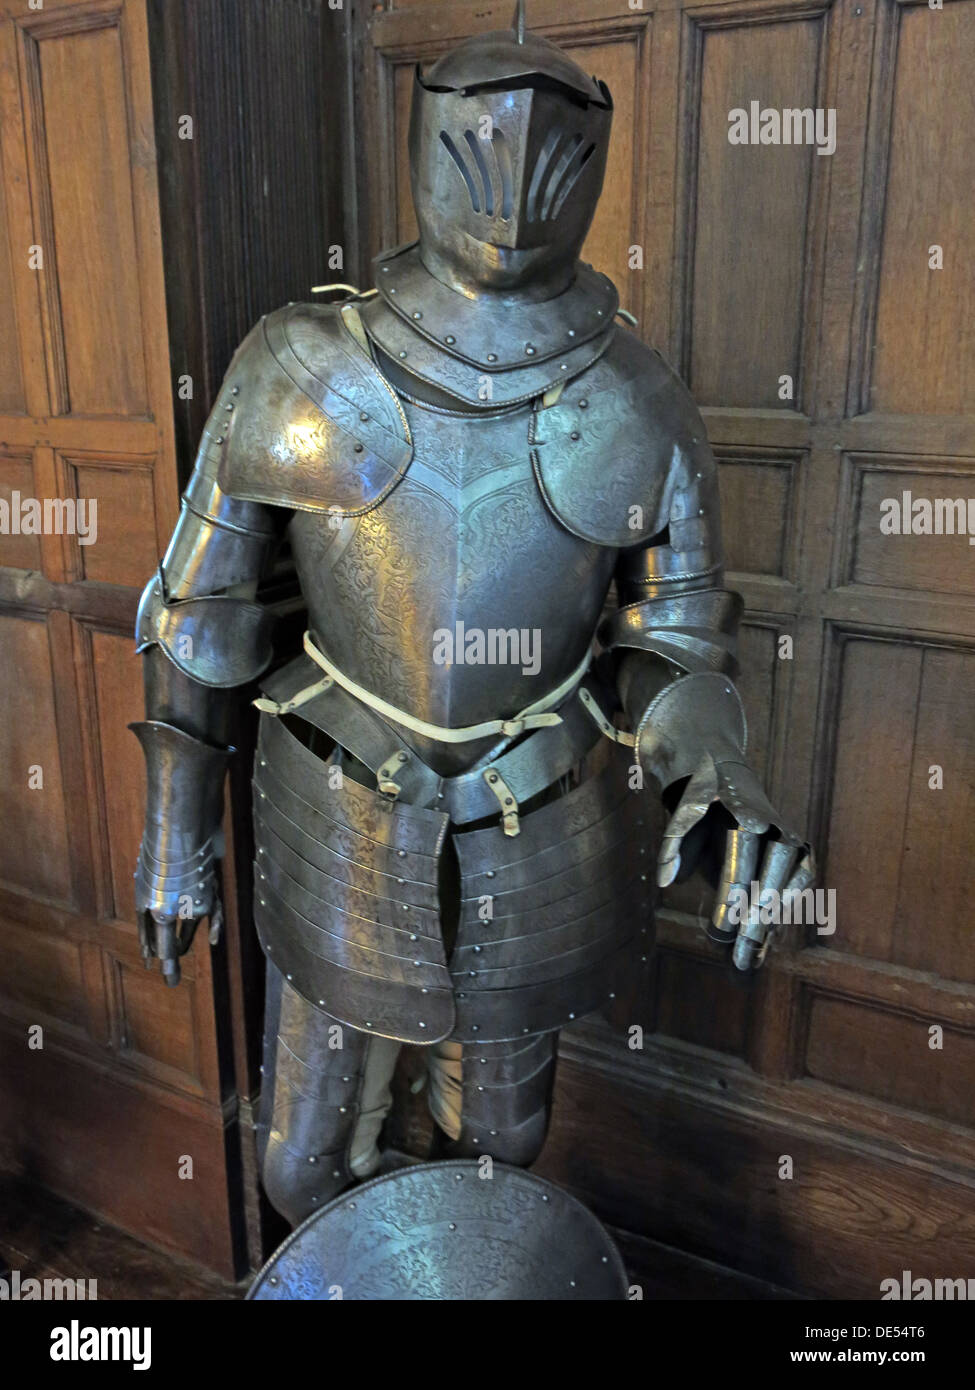 Knight,fight,fighting,metal,British,joust,jousting,functional,protection,for,battle,history,historic,ancient,old,fashioned,iron,steel,metallic,armoury,plate,armour,middle,ages,fight,fighting,shining,battlefield,classic,Europe,European,suit of armour,suit of armor,old fashioned,old-fashioned,GoTonySmith,@HotpixUK,gothic,plated,Medieval,war,combat,style,antiqued,body,Buy Pictures of,Buy Images Of,Images of,Stock Images,Medieval Armour,16th Century,17th Century,Body Armour